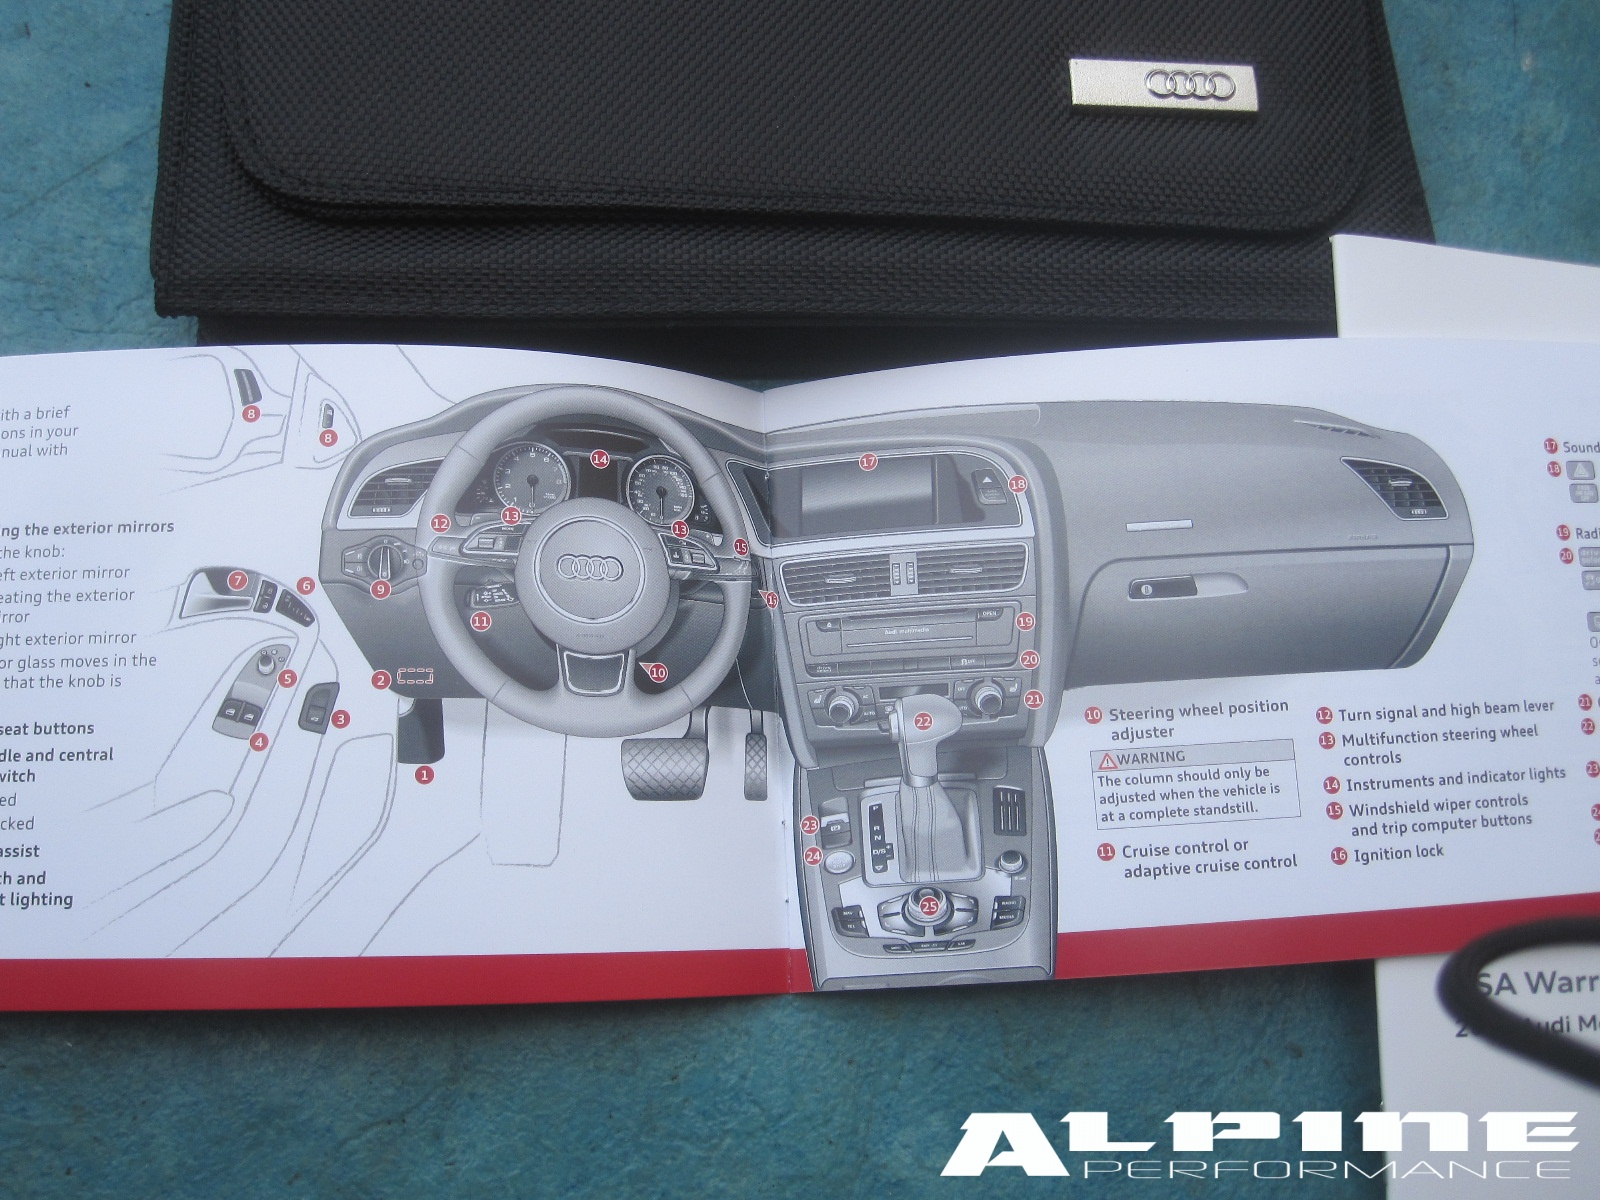 2013 audi a5 owners manual